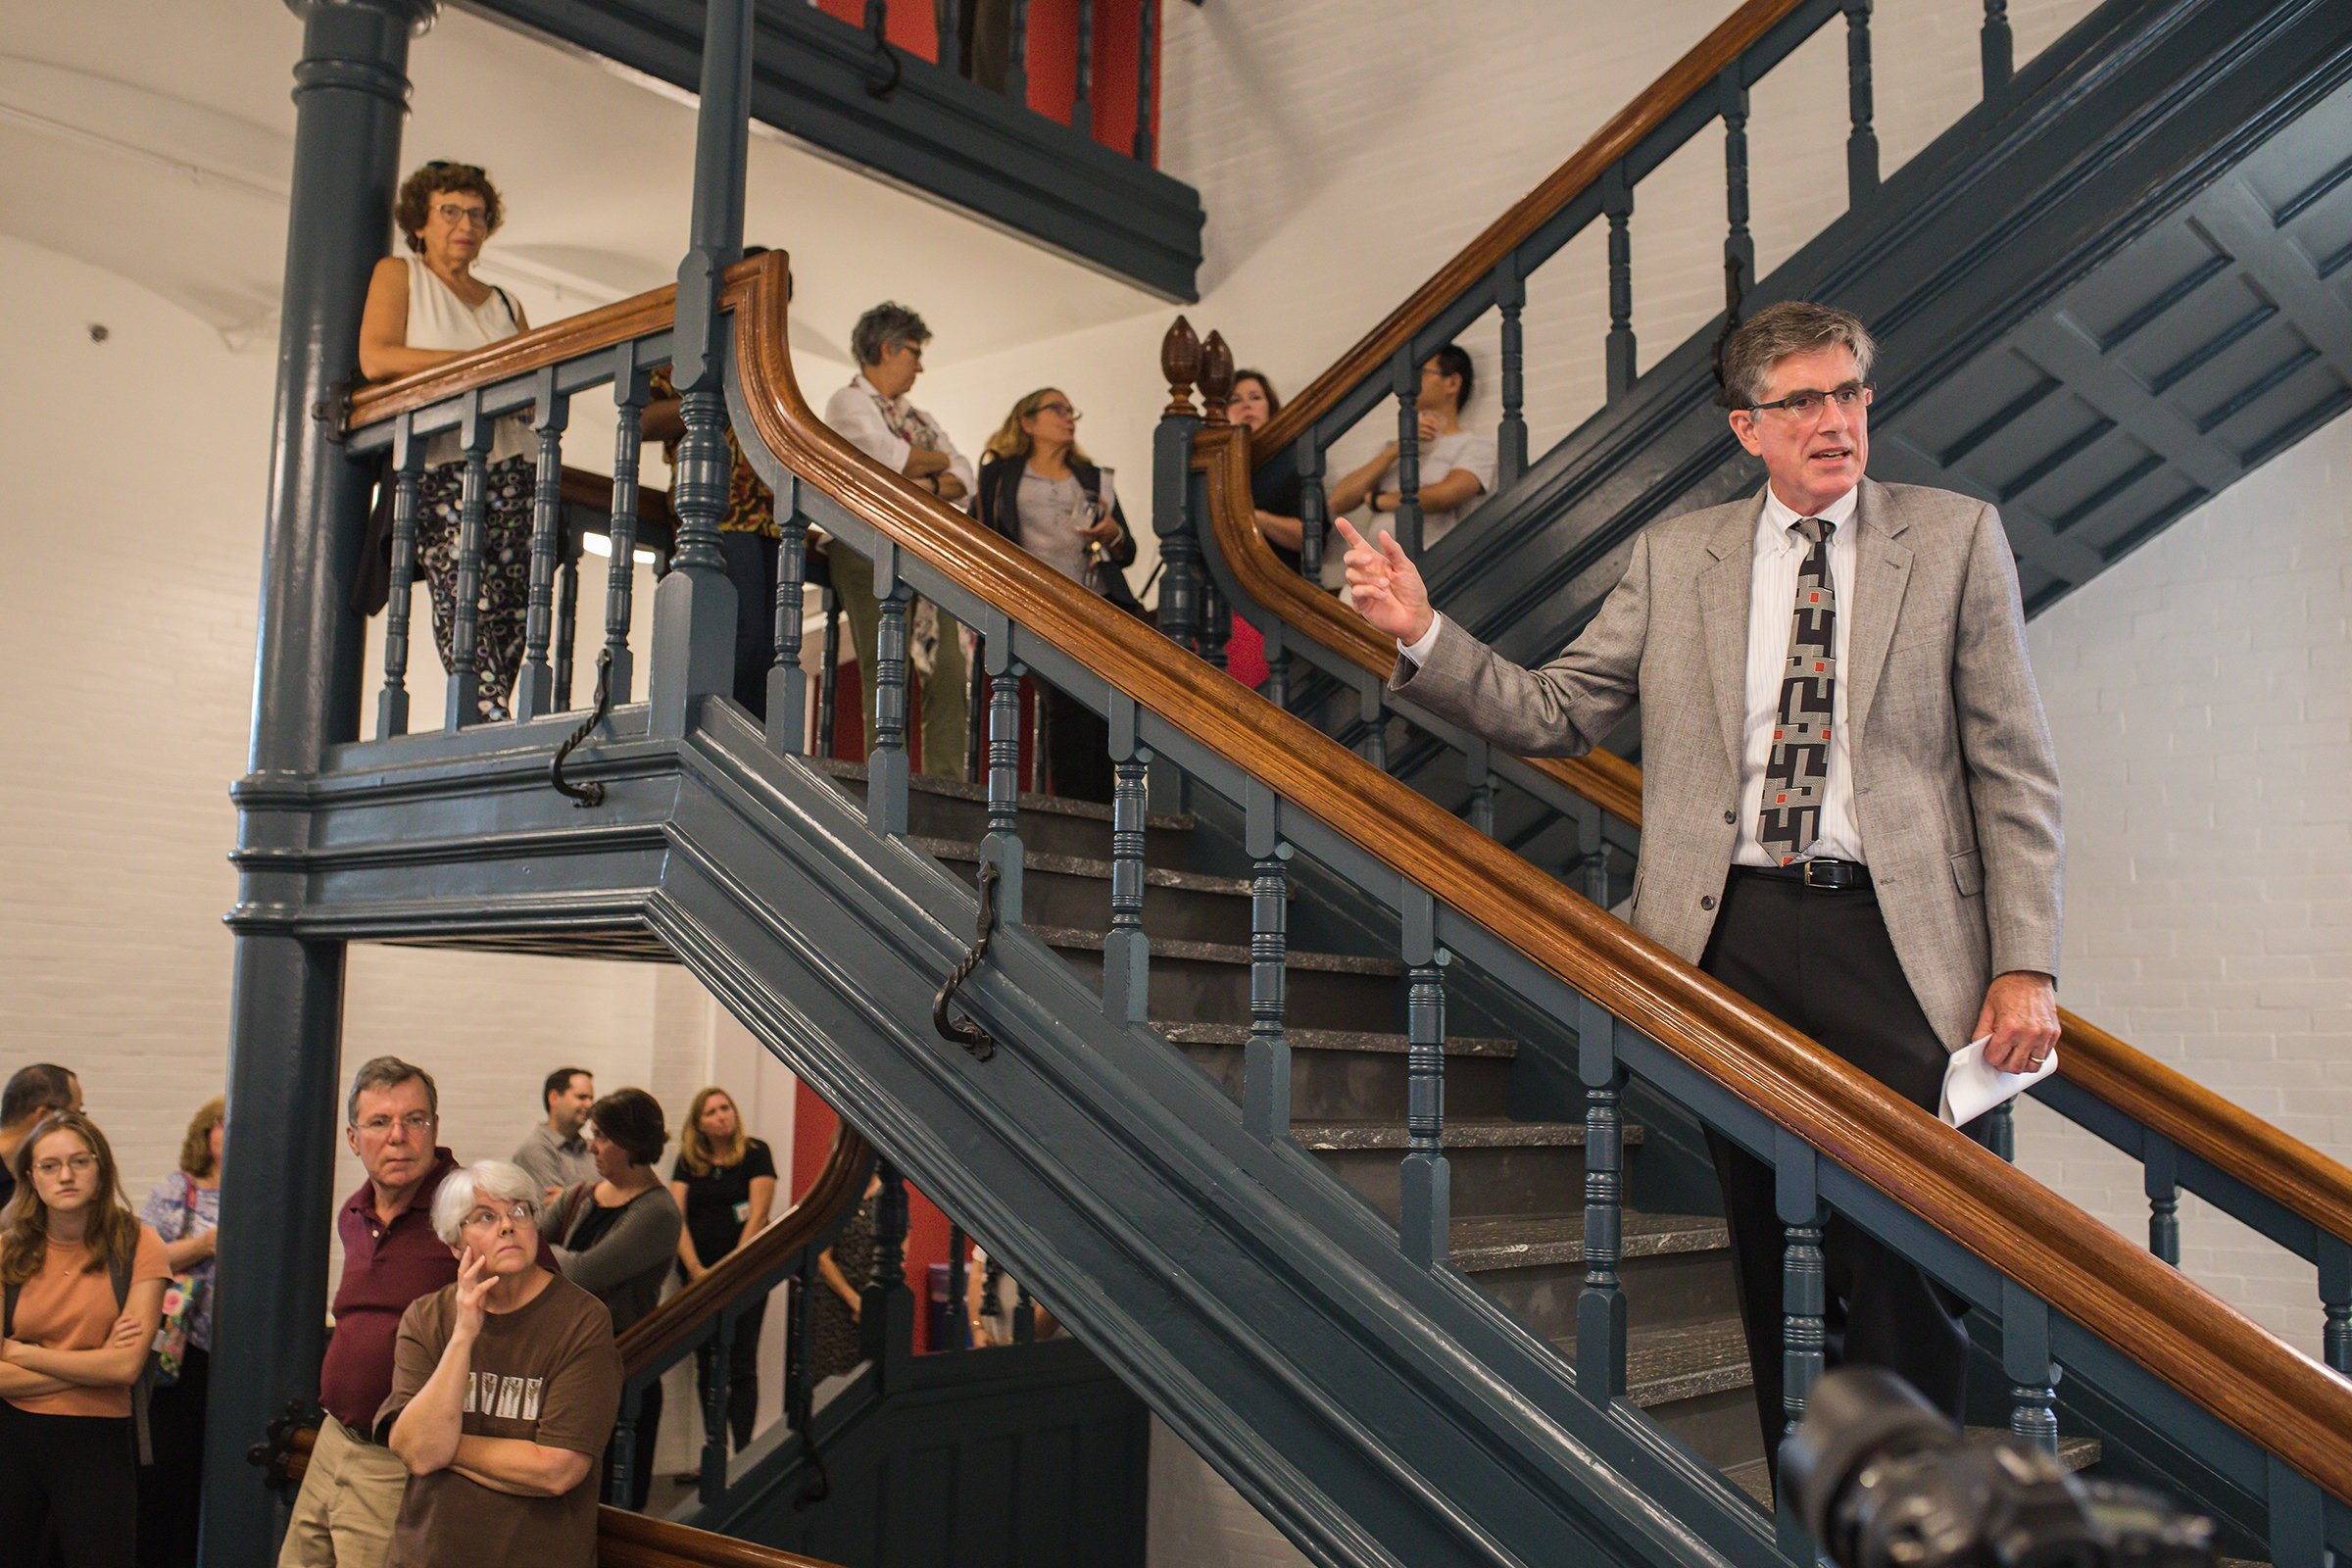 Lehigh Provost Pat Farrell speaks on the staircase at the open house for the newly renovated Chandler-Ullmann Hall.